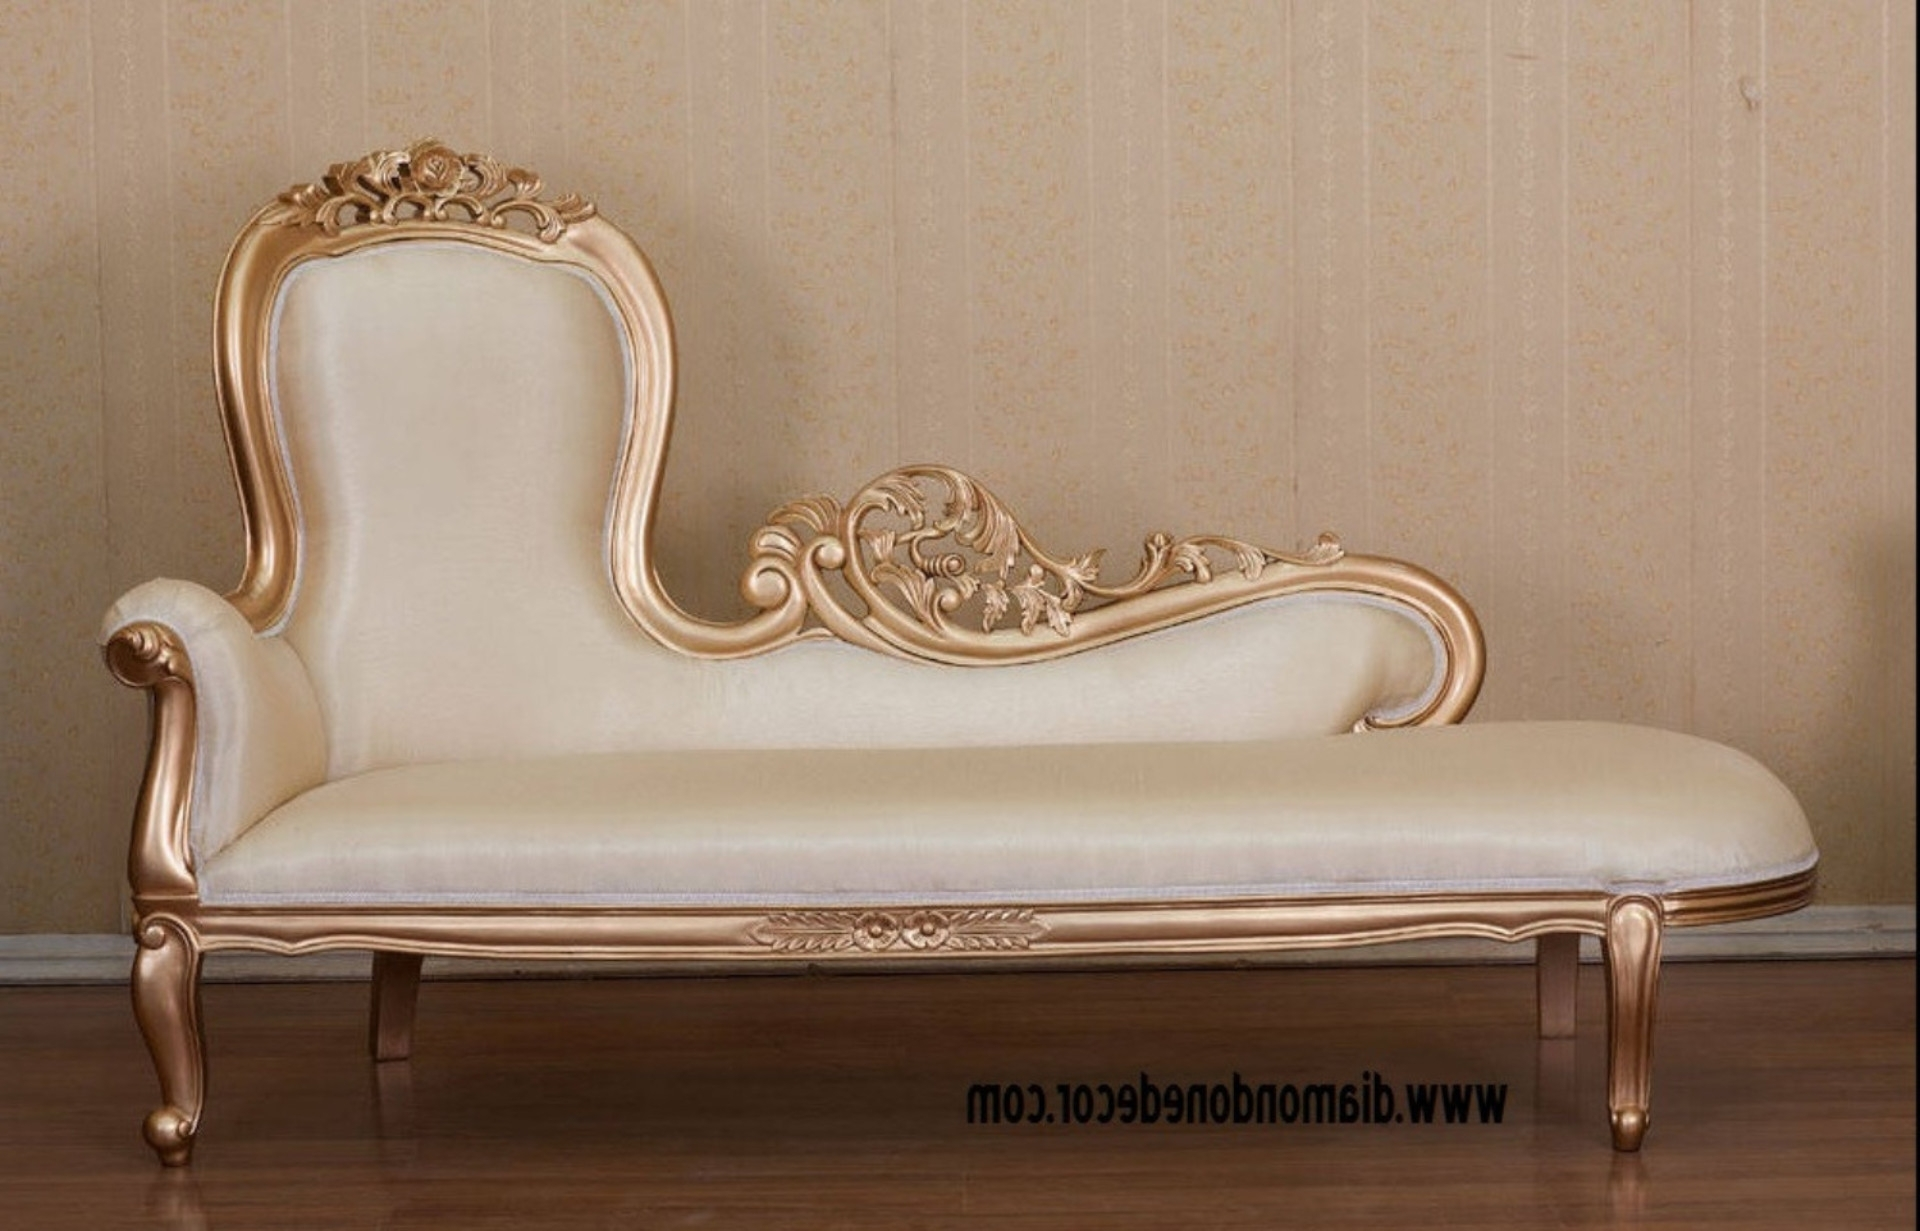 Fashionable Hot Pink Baroque French Reproduction Louis Xvi Style,rococo Throughout French Country Chaise Lounges (View 15 of 15)